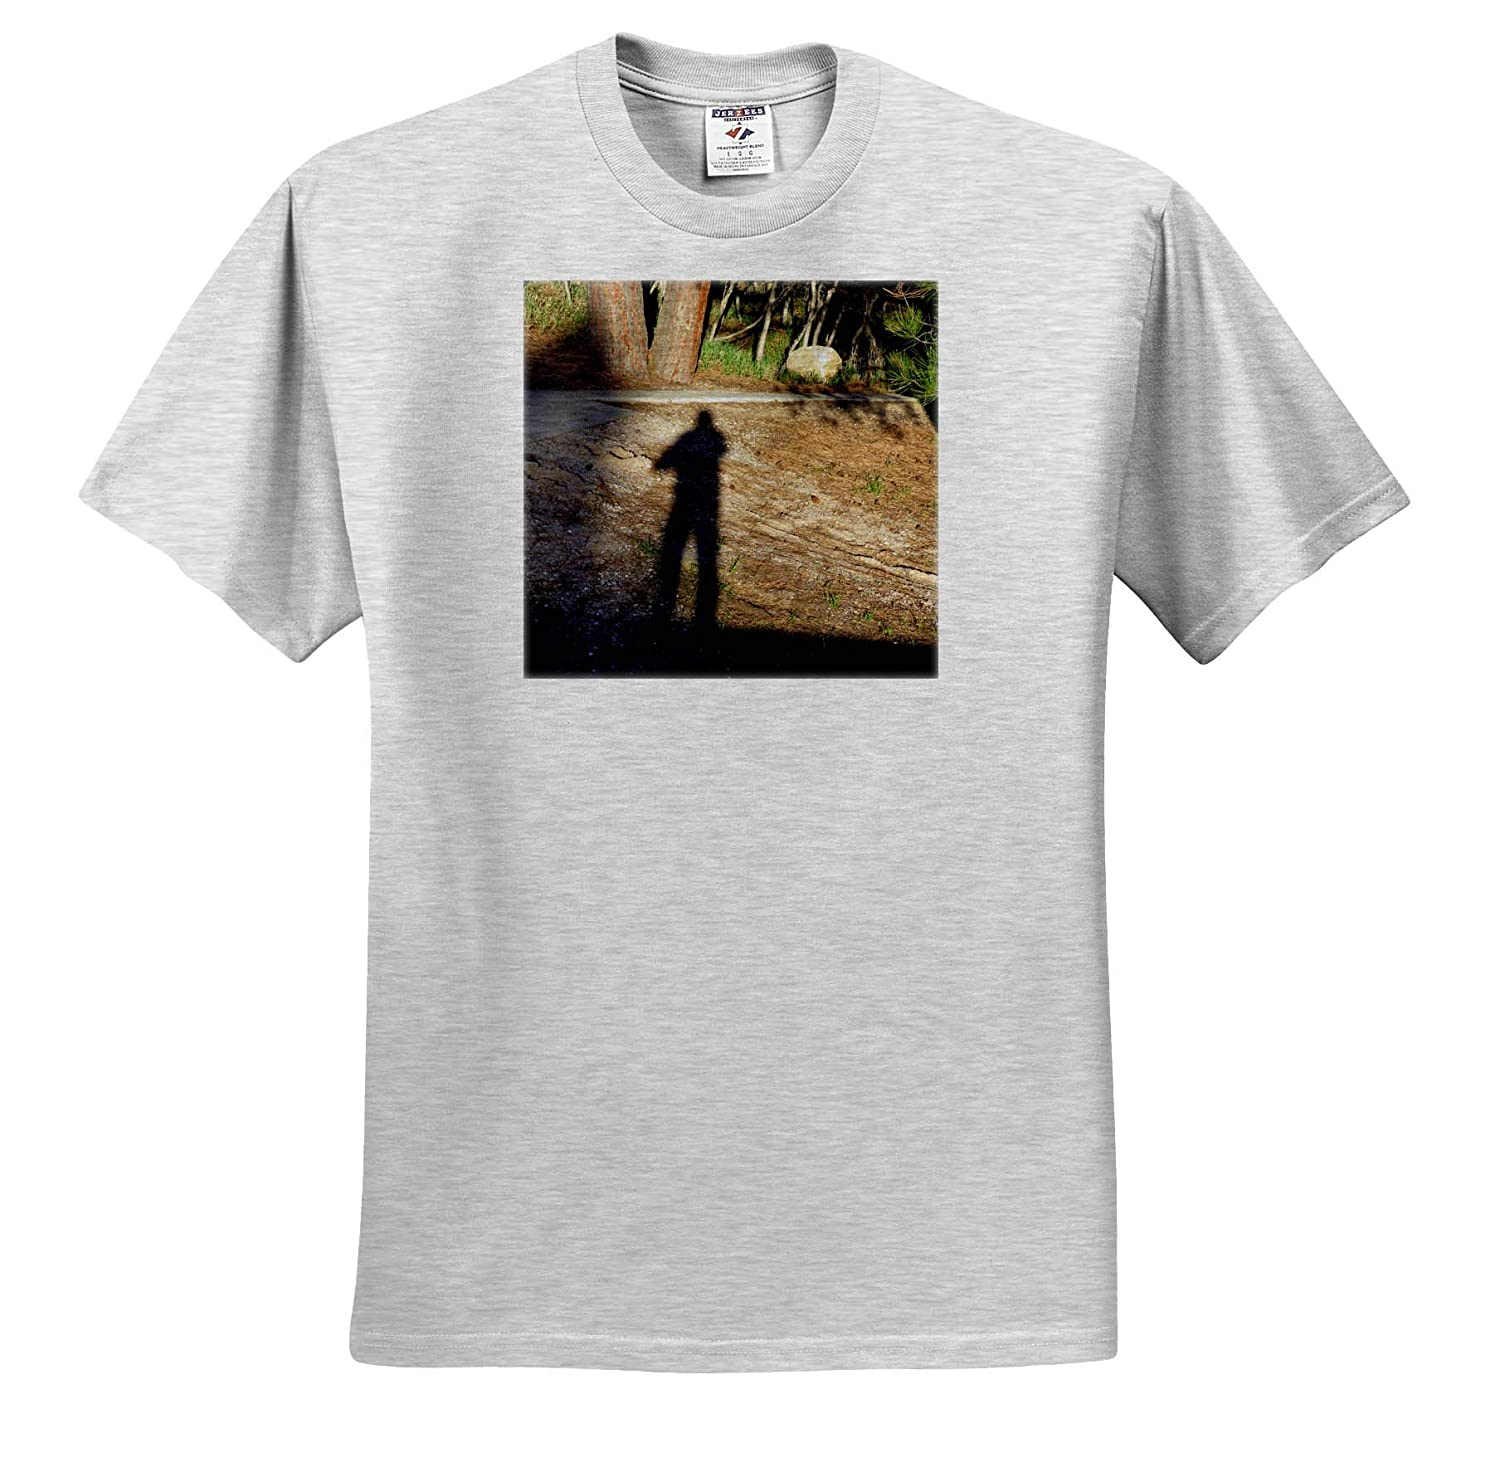 Adult T-Shirt XL 3dRose Jos Fauxtographee- Shadow A Shadow of a Woman with a cast on her arm in Dixie Forest ts/_319007